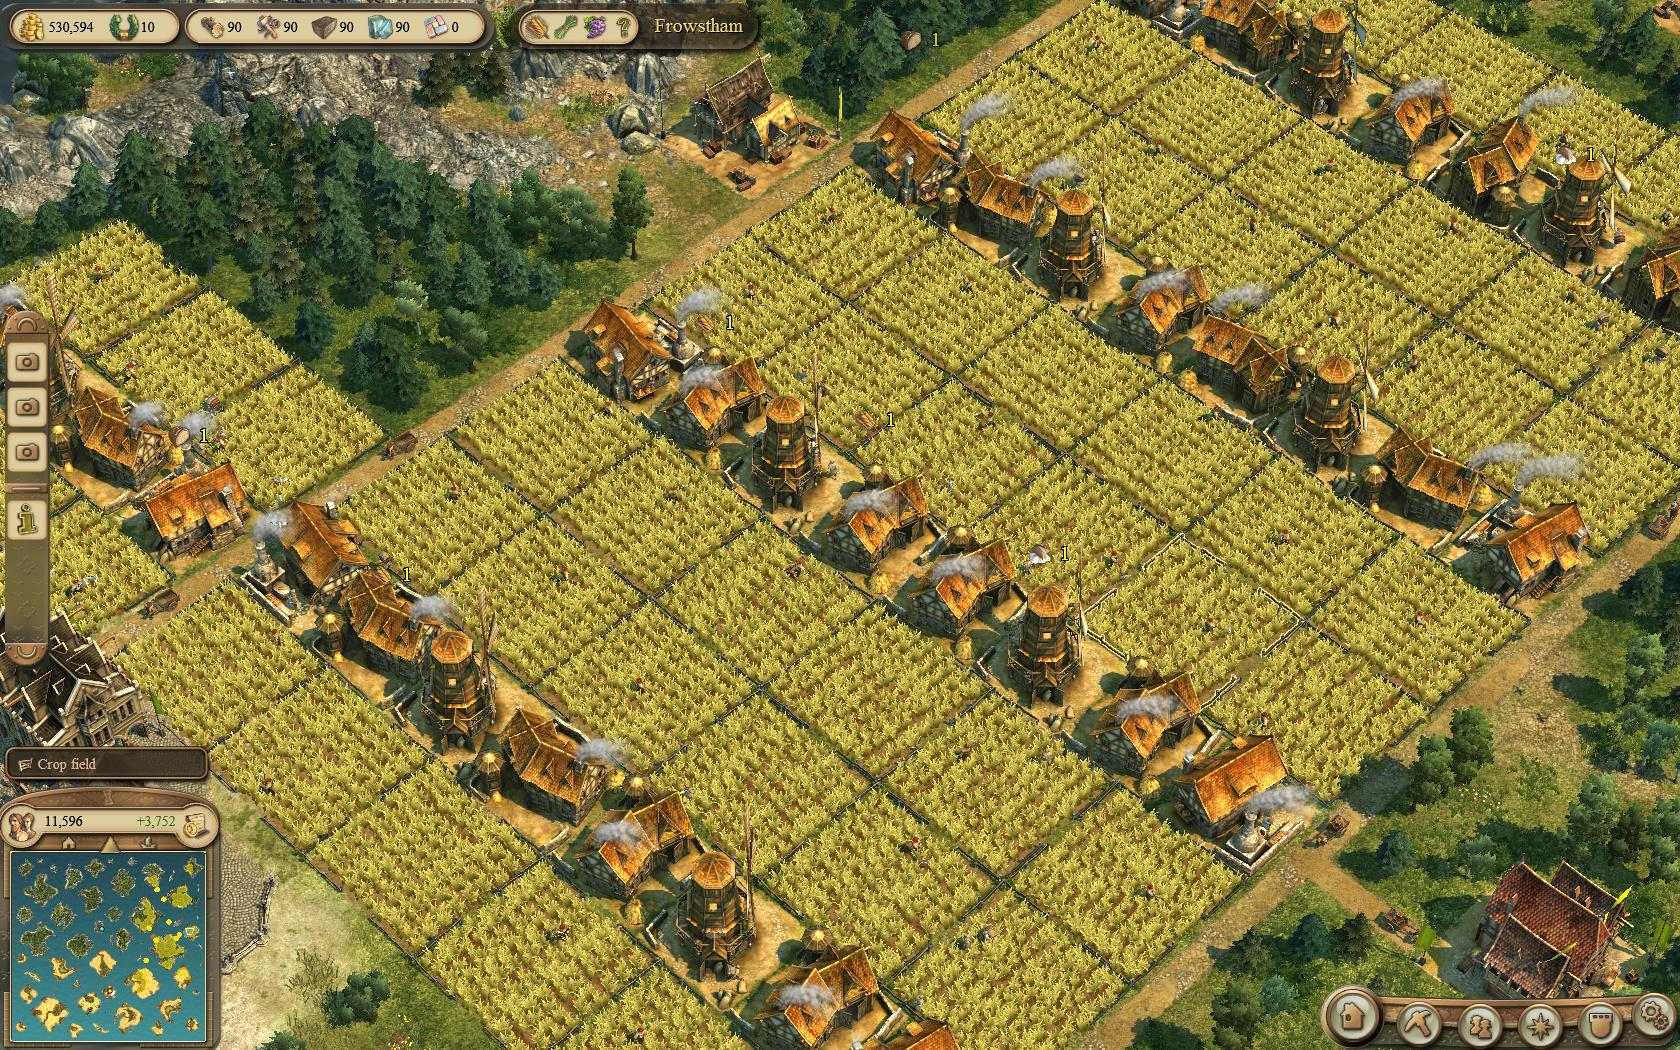 Anno 1404 Efficient Building Layouts.1404 I Keep Getting The Exclamation Marks Over Buildings Asking For